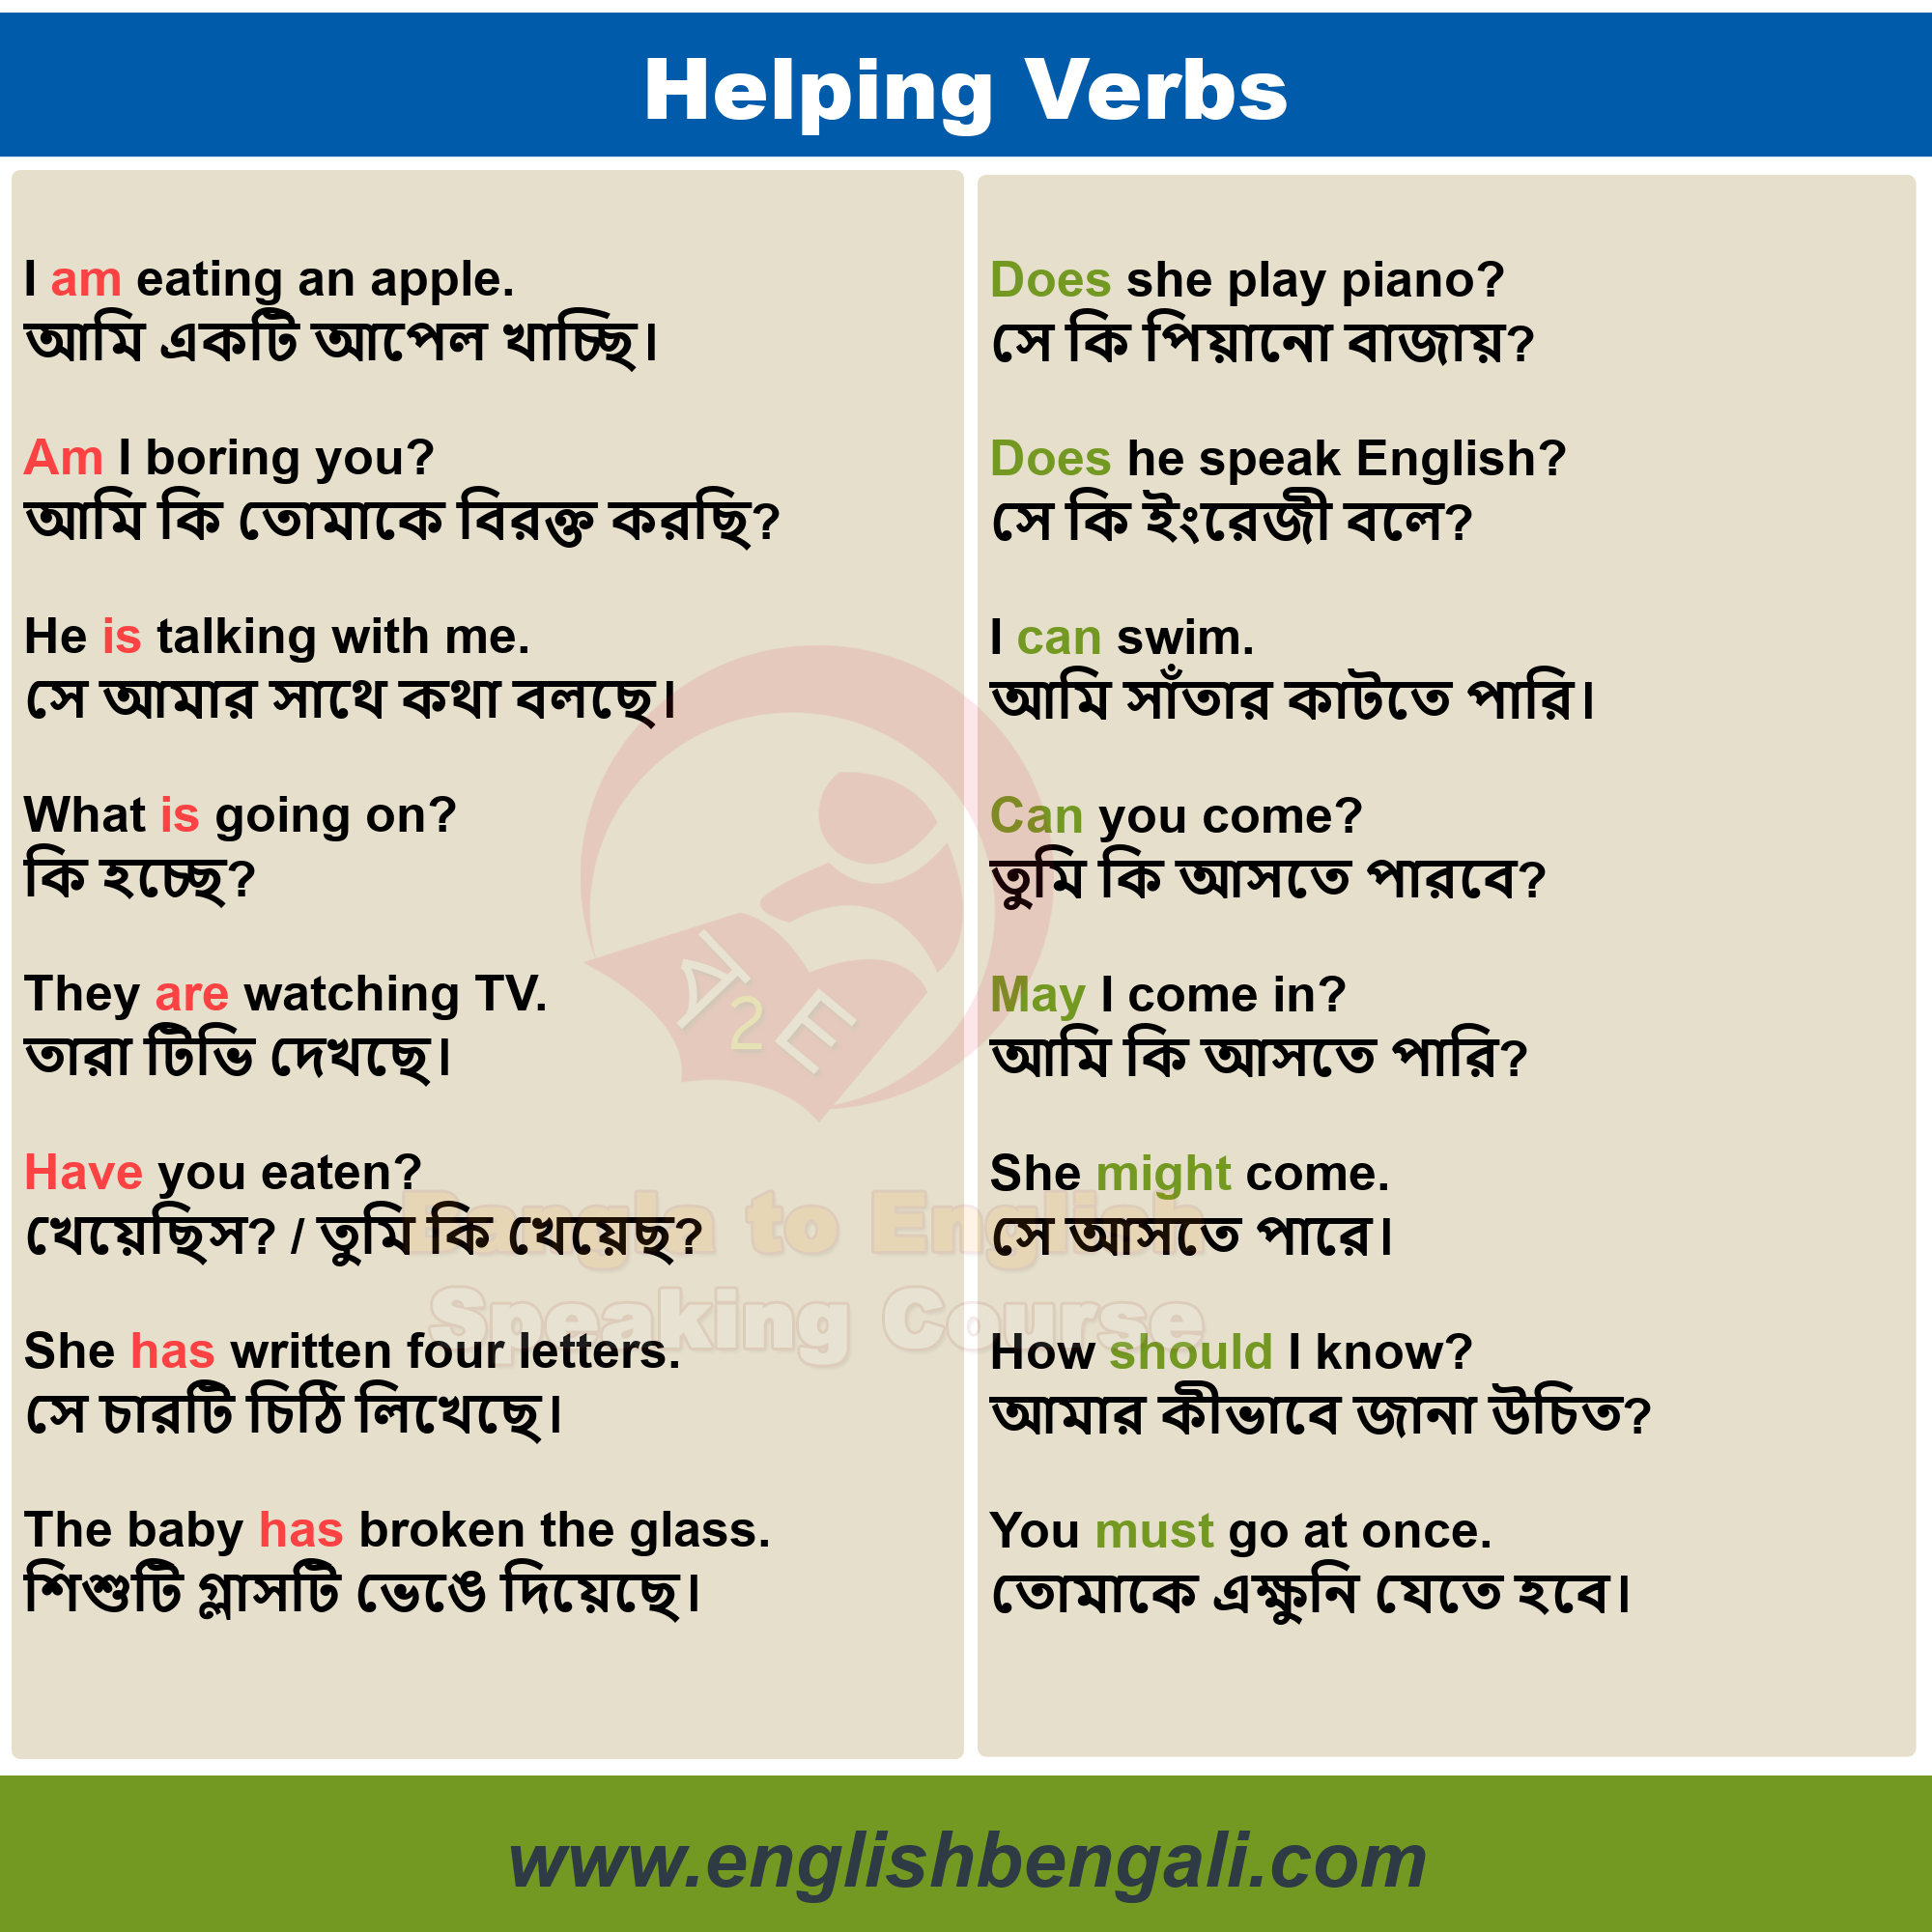 All Helping Verbs In English With Bengali Meaning Helping Verbs English Verbs Verbs List [ 2000 x 2000 Pixel ]